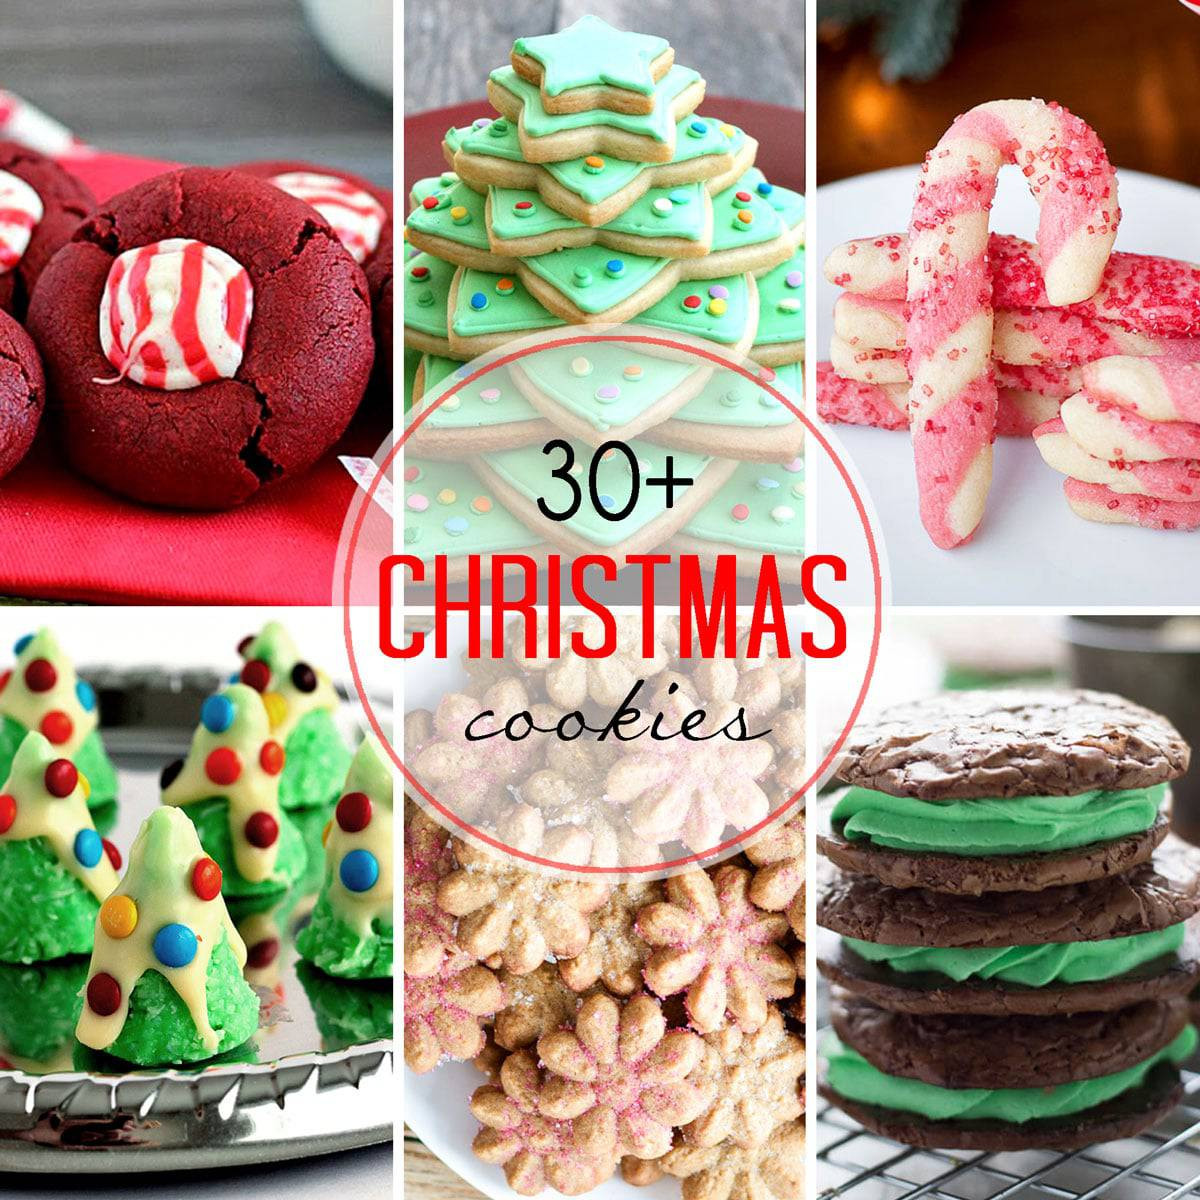 Christmas Cookies Recipe  30 Plus Festive Christmas Cookie Recipes — Let s Dish Recipes